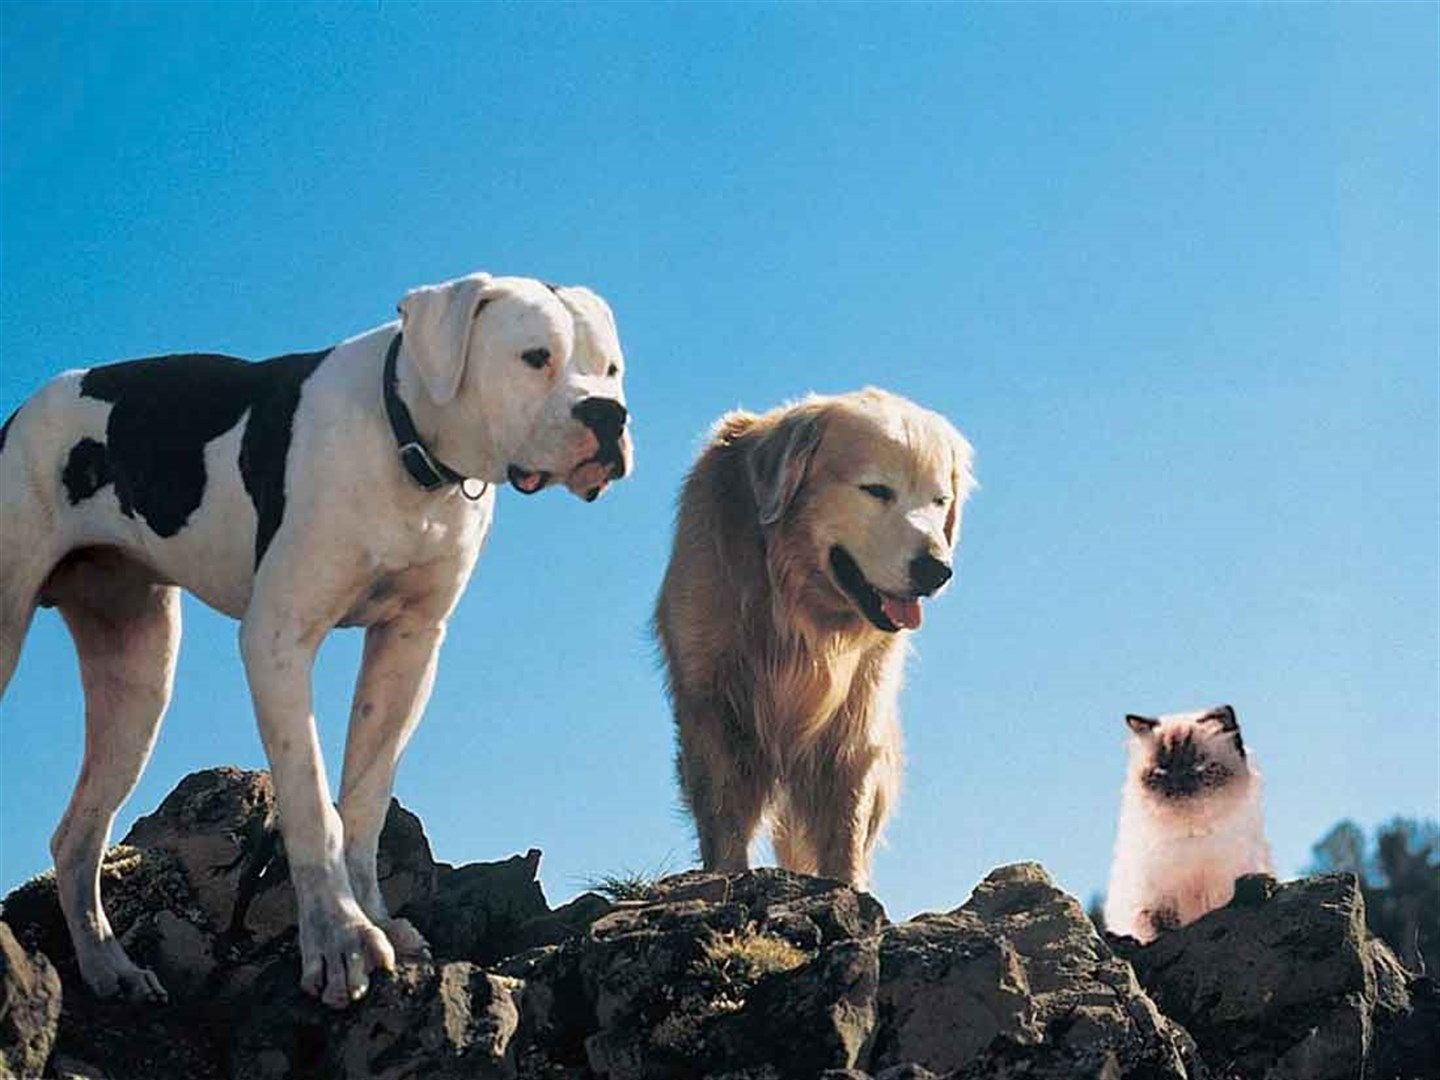 'Homeward Bound' (1993)